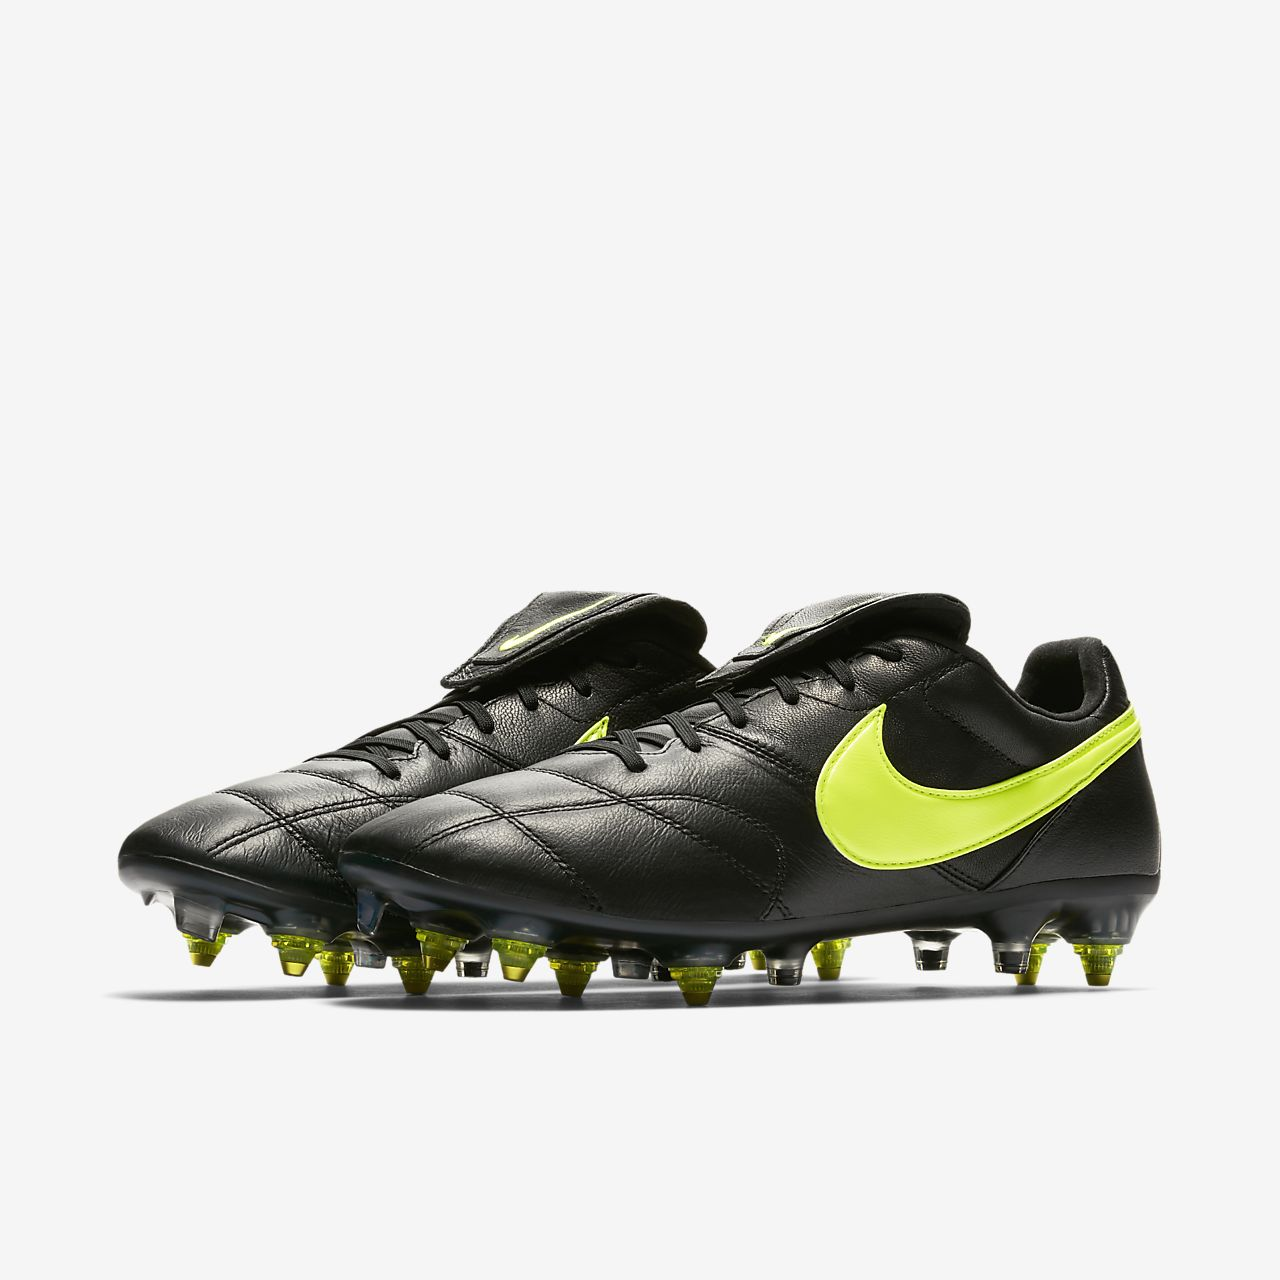 Scarpa da calcio per terreni morbidi Nike Premier II Anti-Clog Traction SG-PRO